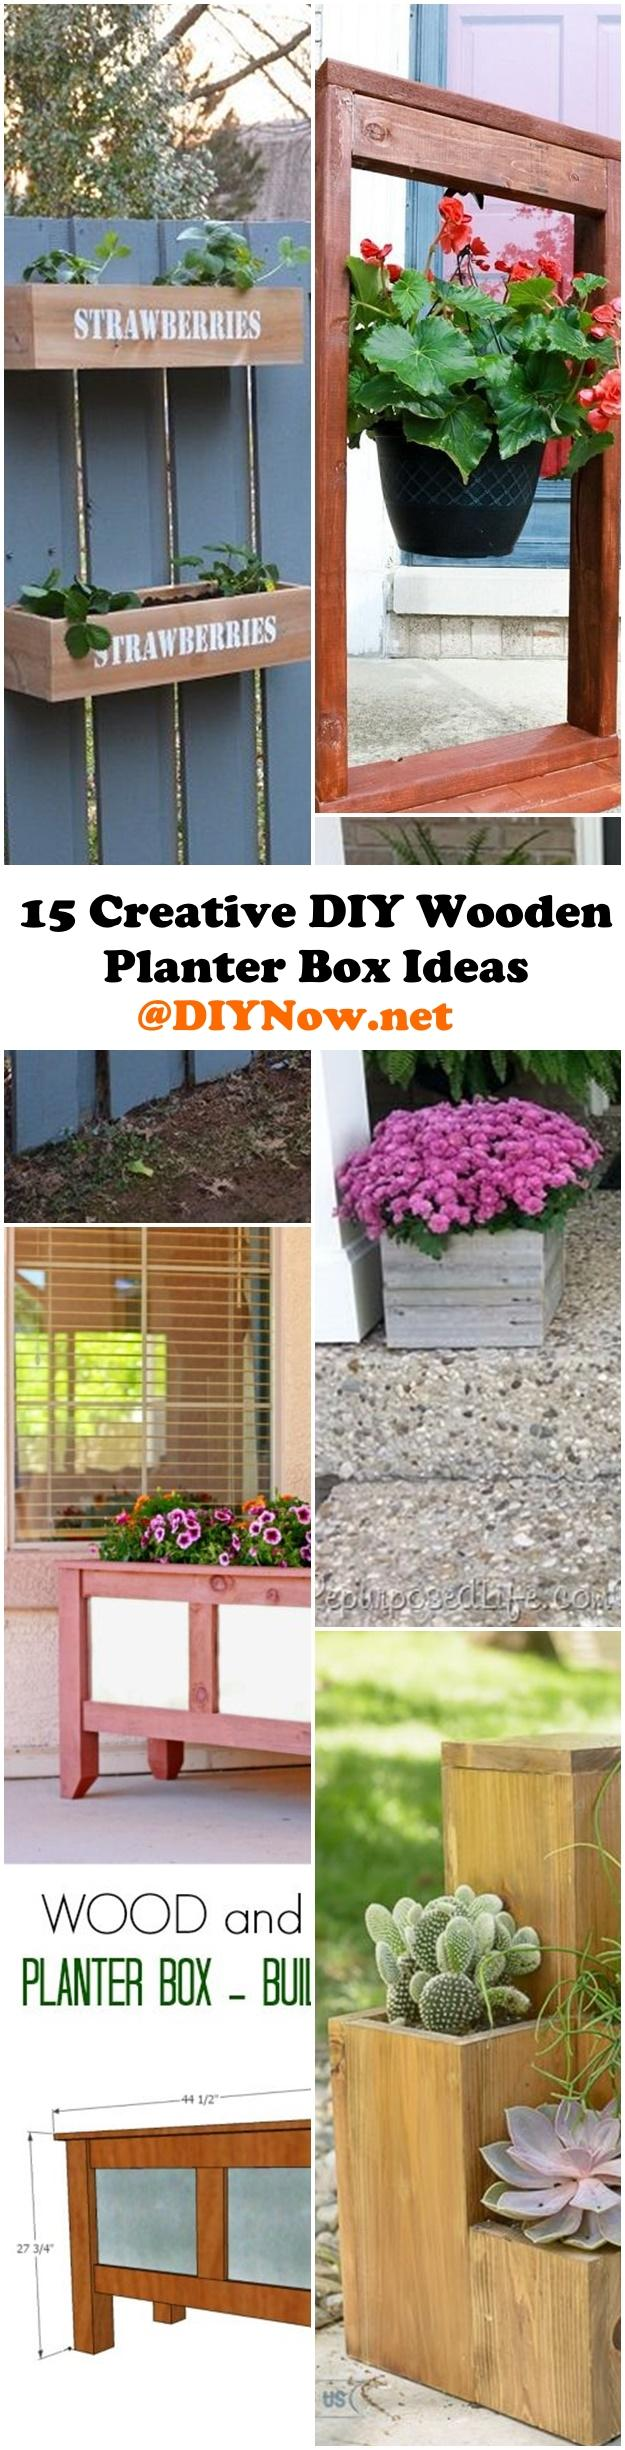 15 Creative DIY Wooden Planter Box Ideas